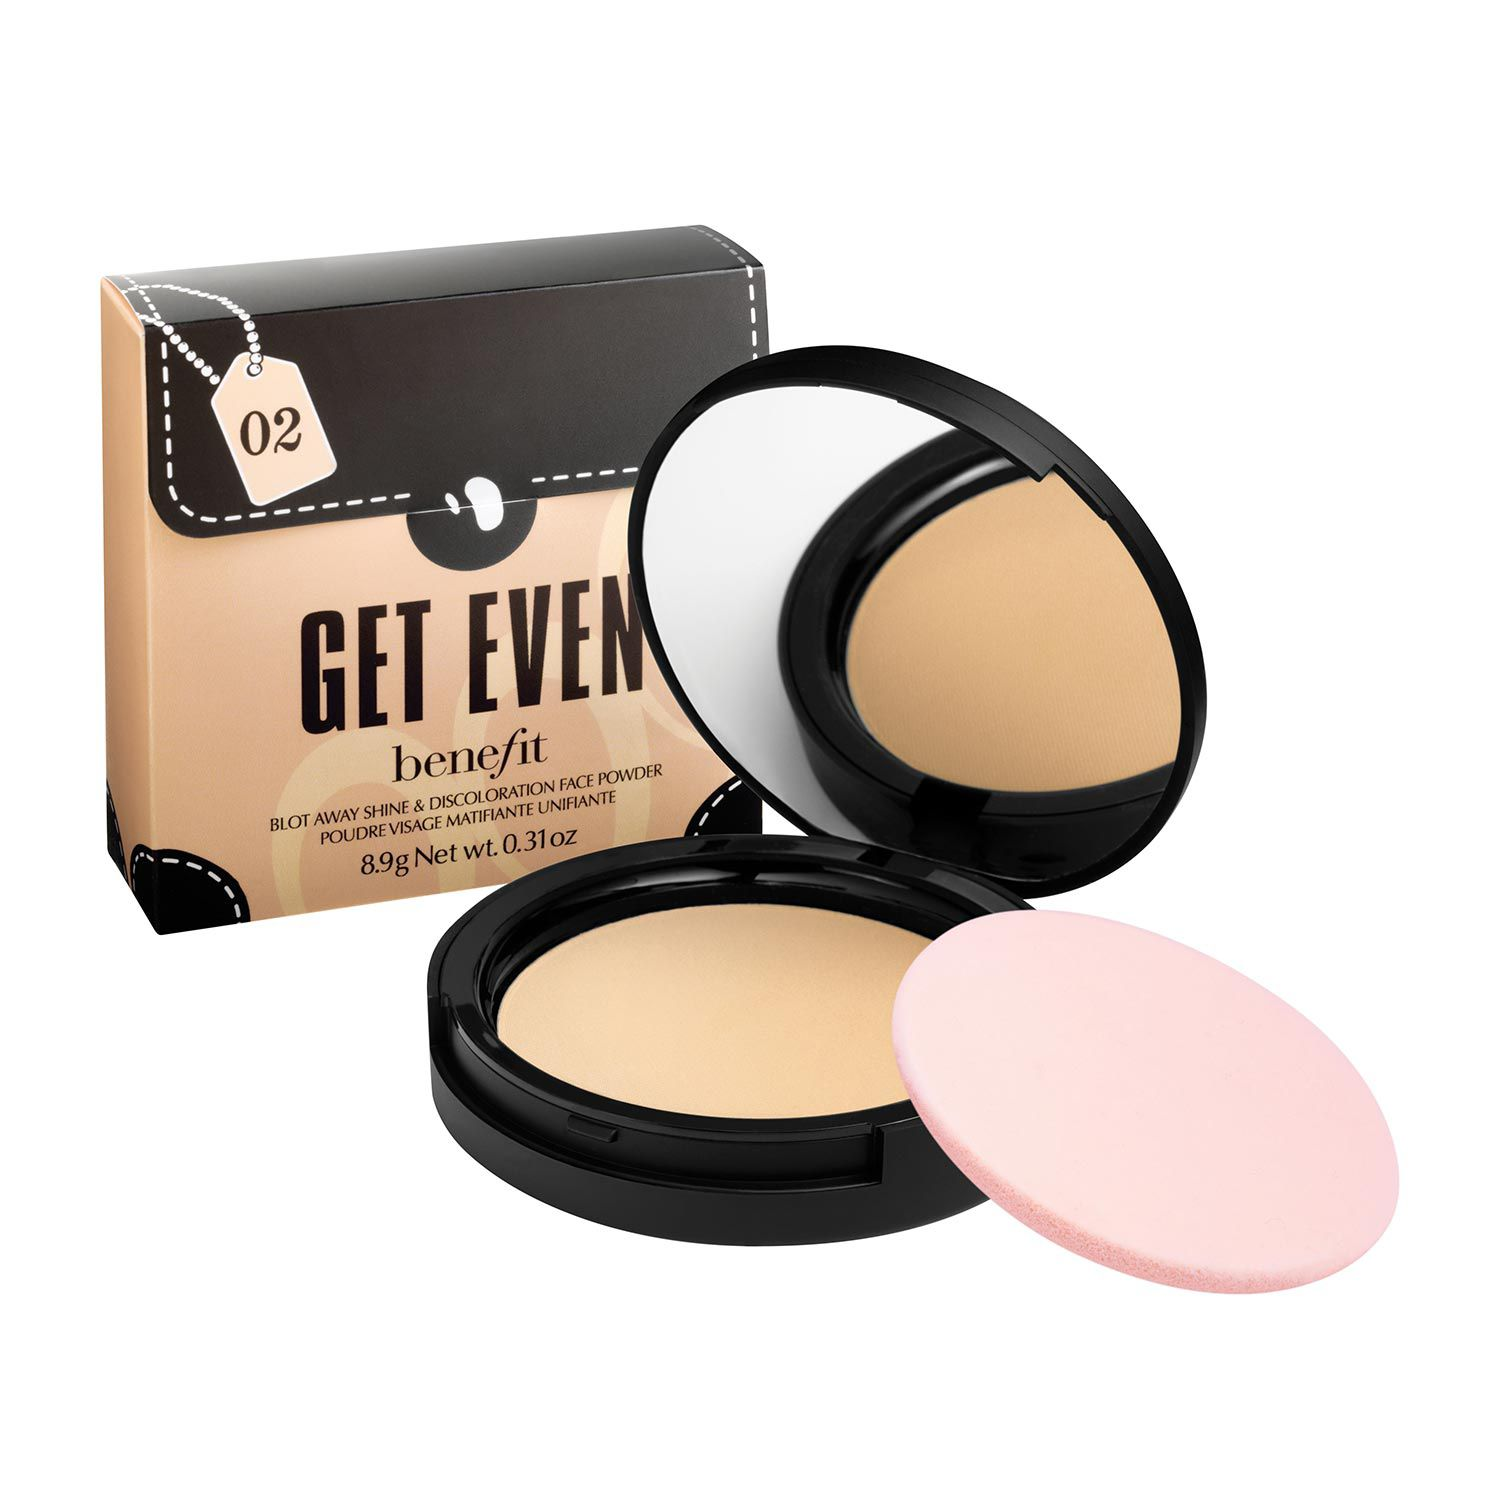 Get Even Colour Correcting Face Powder